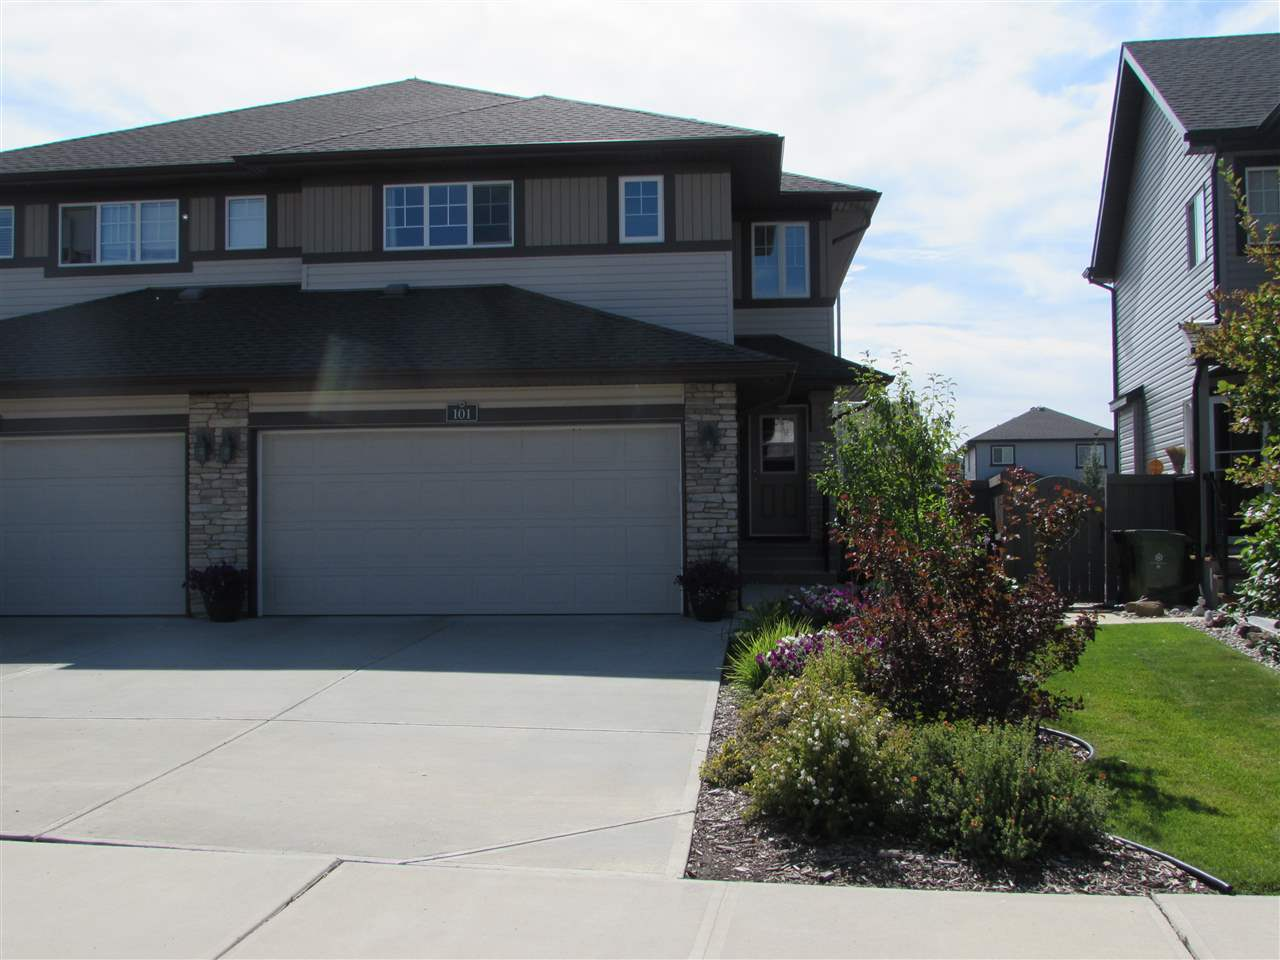 MLS® listing #E4170735 for sale located at 101 Catalina Court